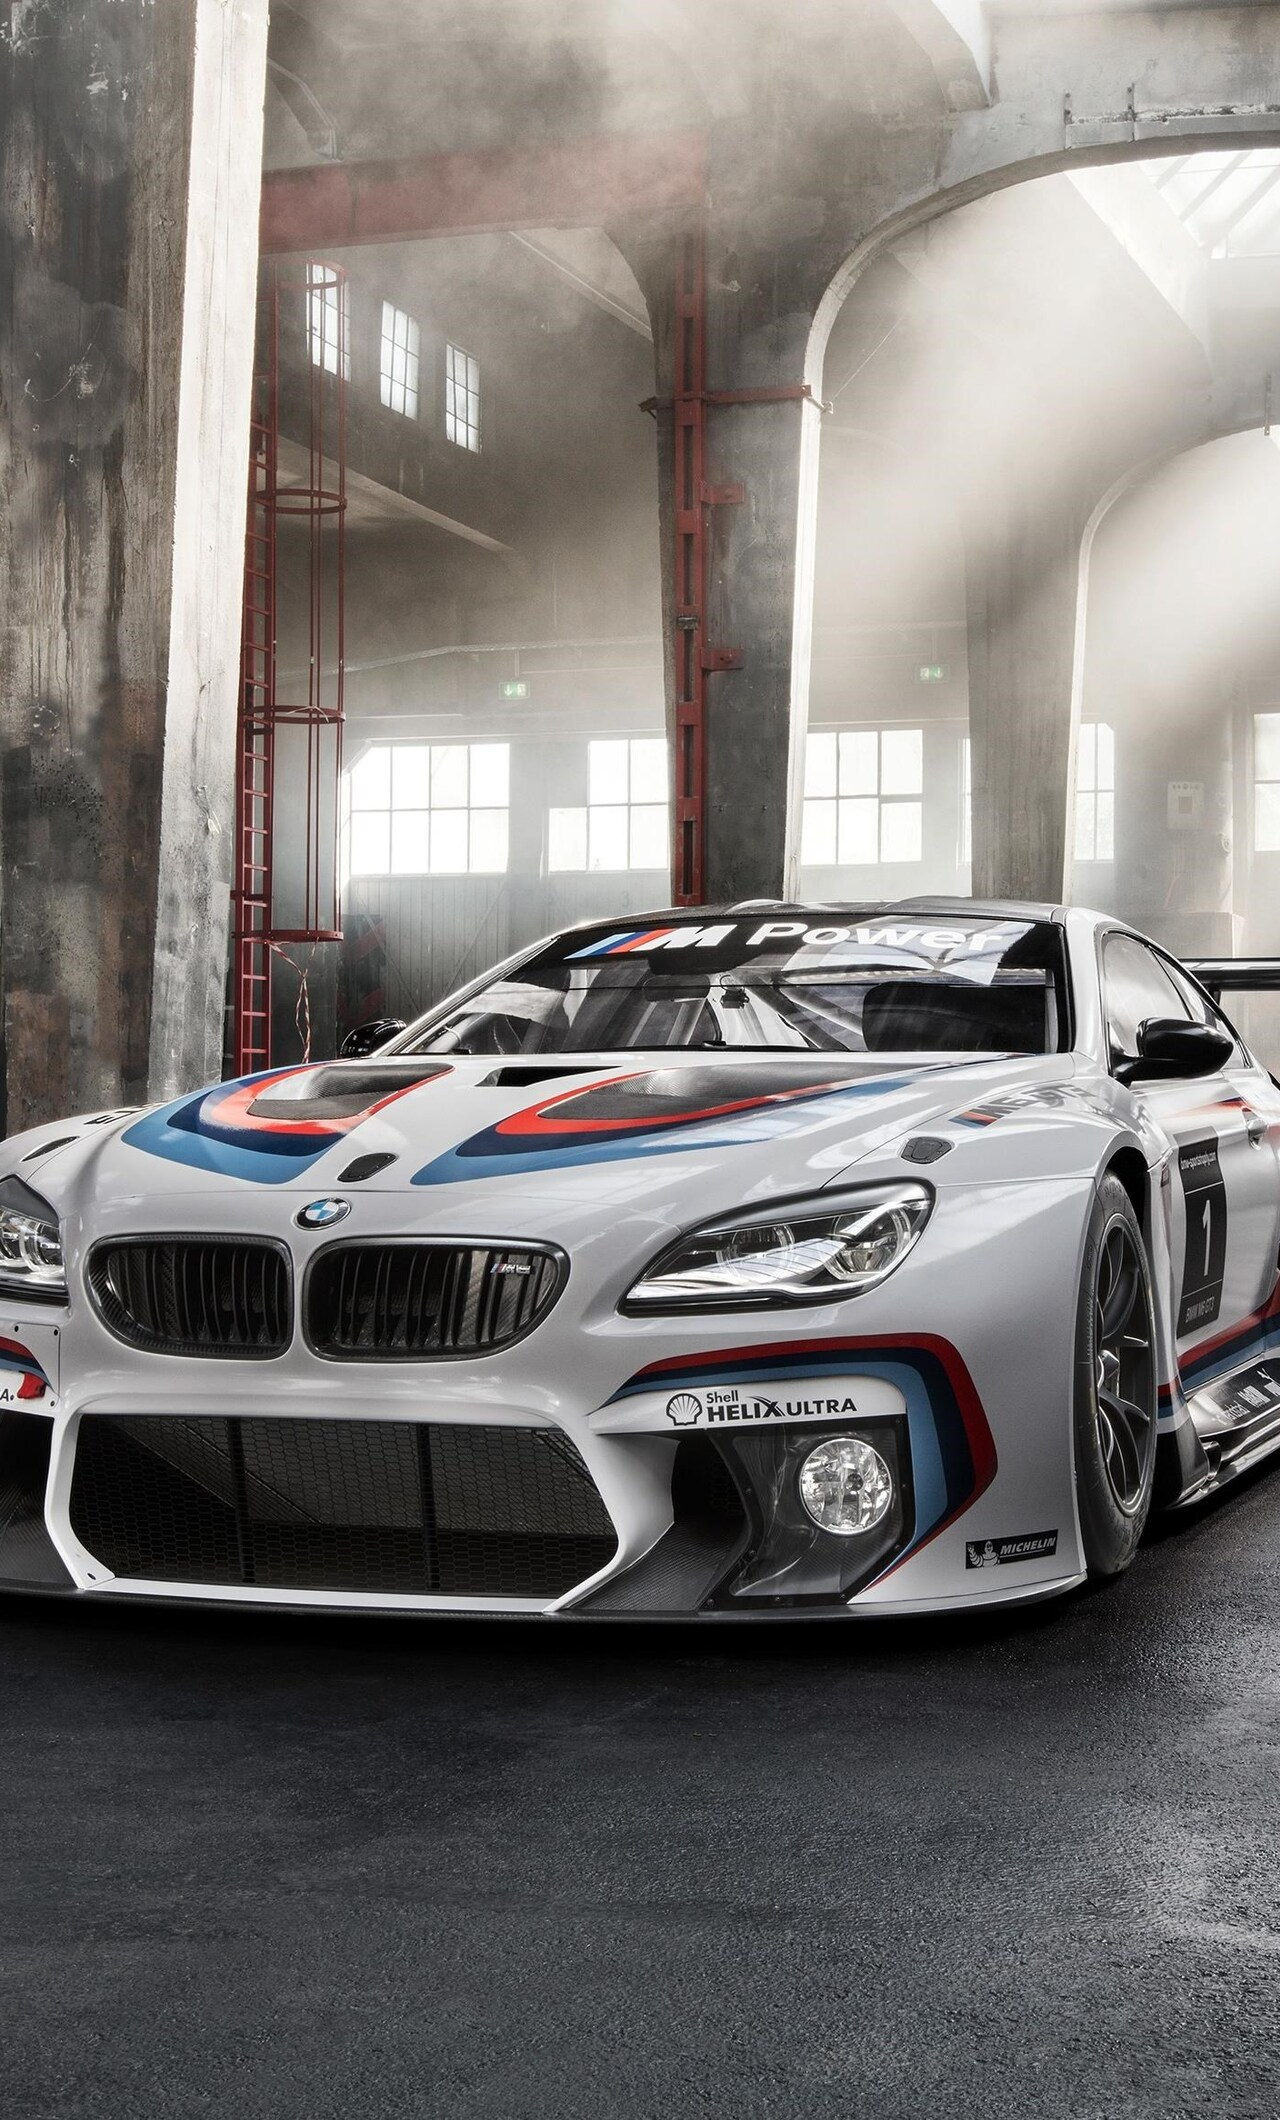 1280x2120 Bmw M6 Racing Car Iphone 6 Hd 4k Wallpapers